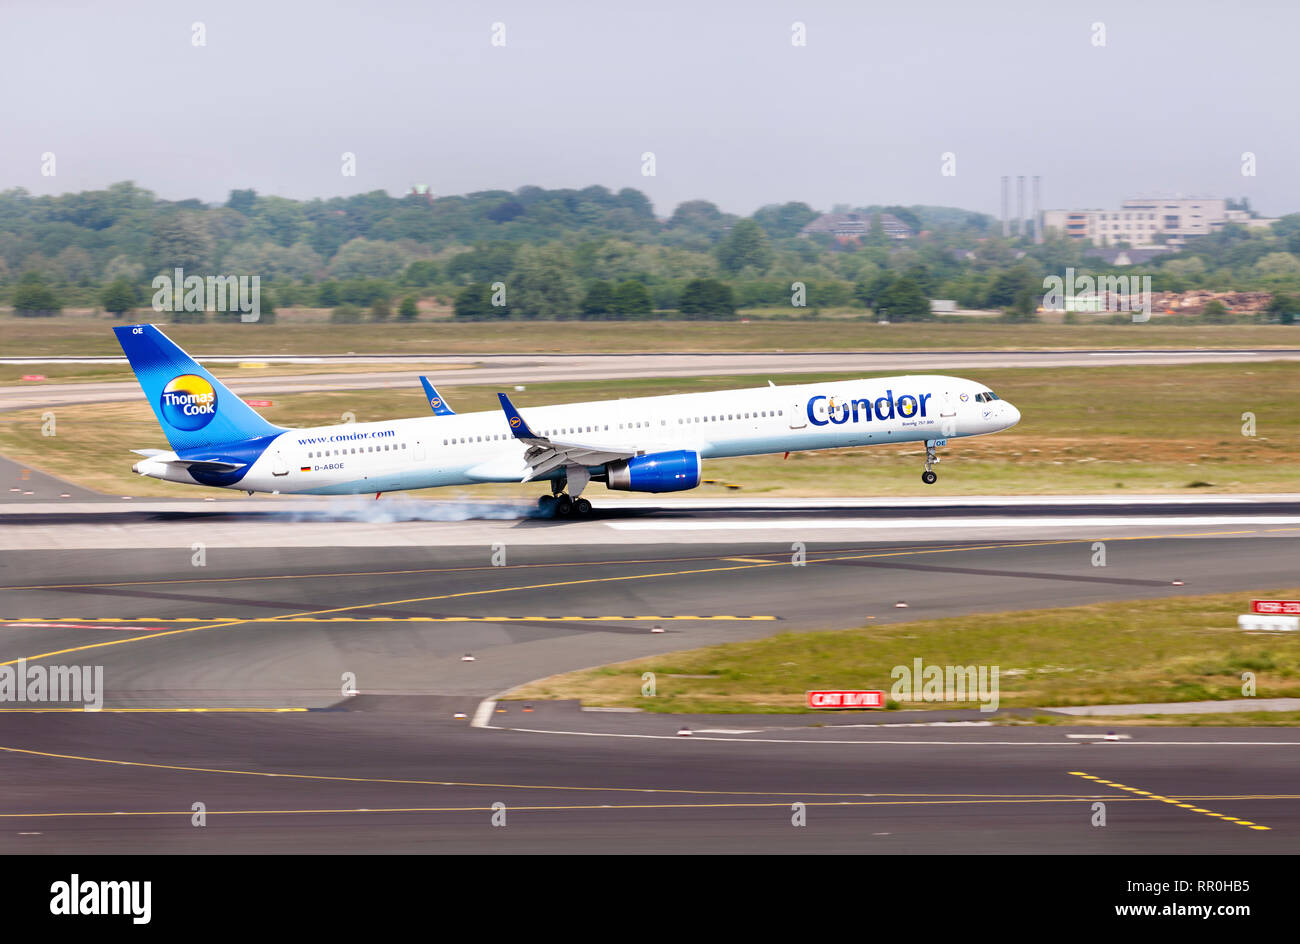 An airplane Boeing 757-300 of 'Condor' airline , part of the largest tourist brand 'Thomas cook', lands on the runway of an airport - Stock Image